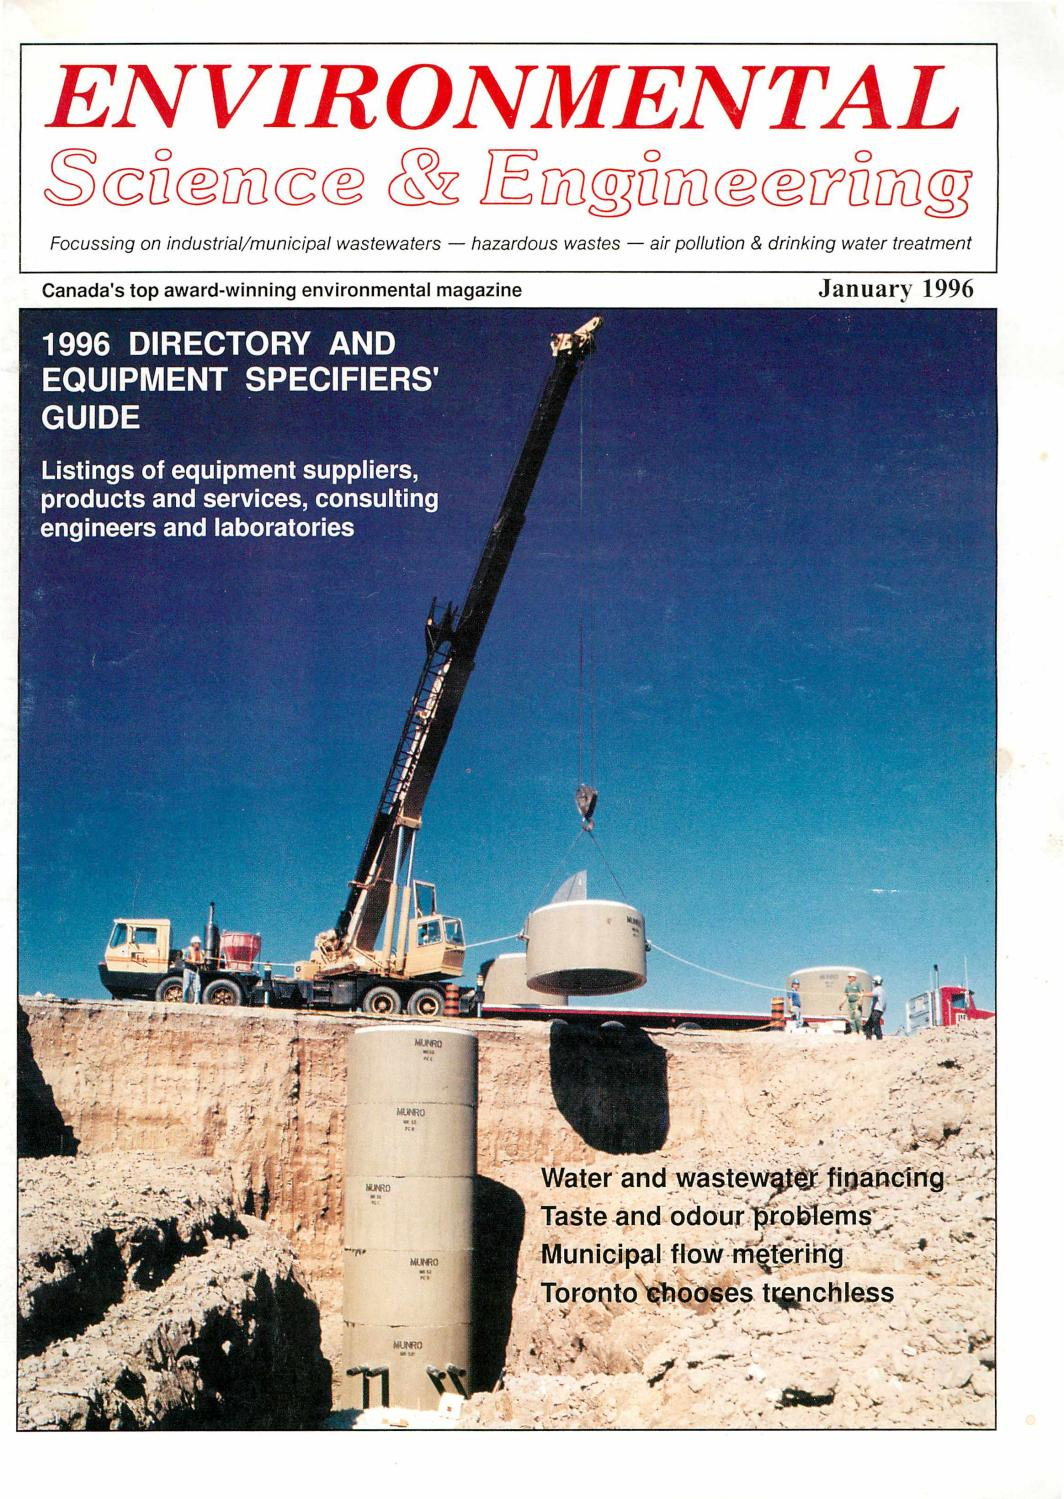 Environmental Science & Engineering Magazine (ESEMAG) January 1996 ...